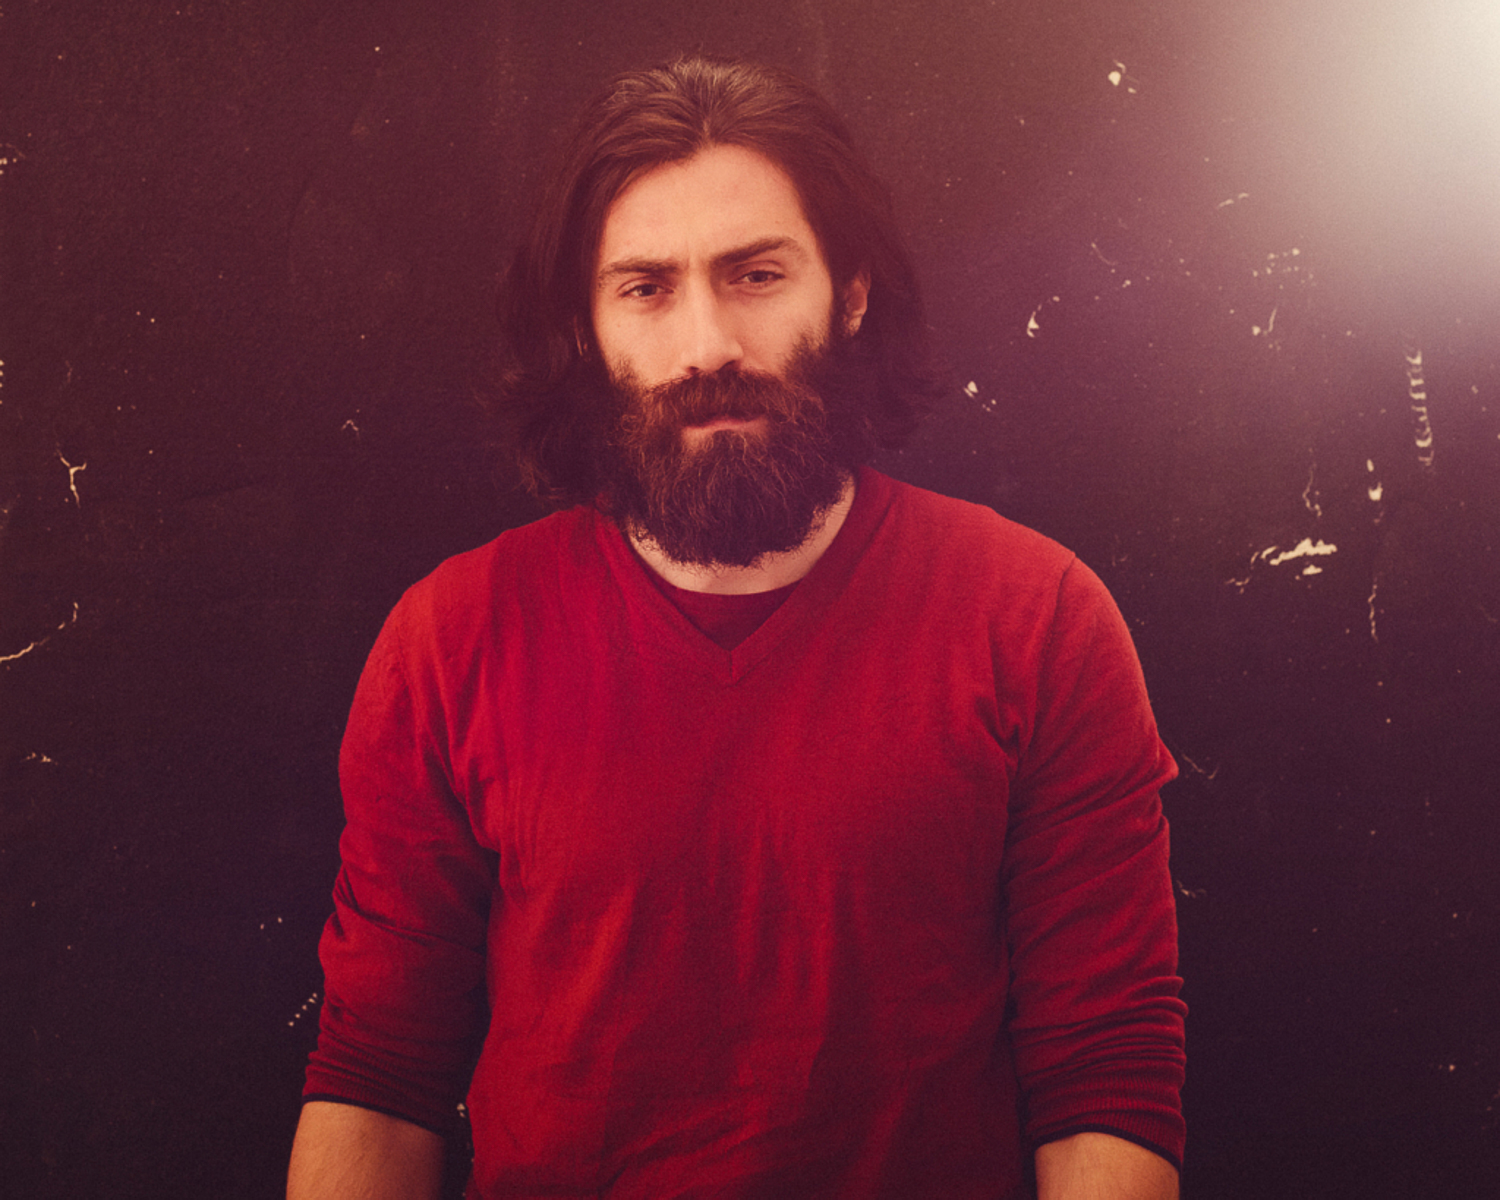 portrait photographer Tim Cole shoots man in red jumper